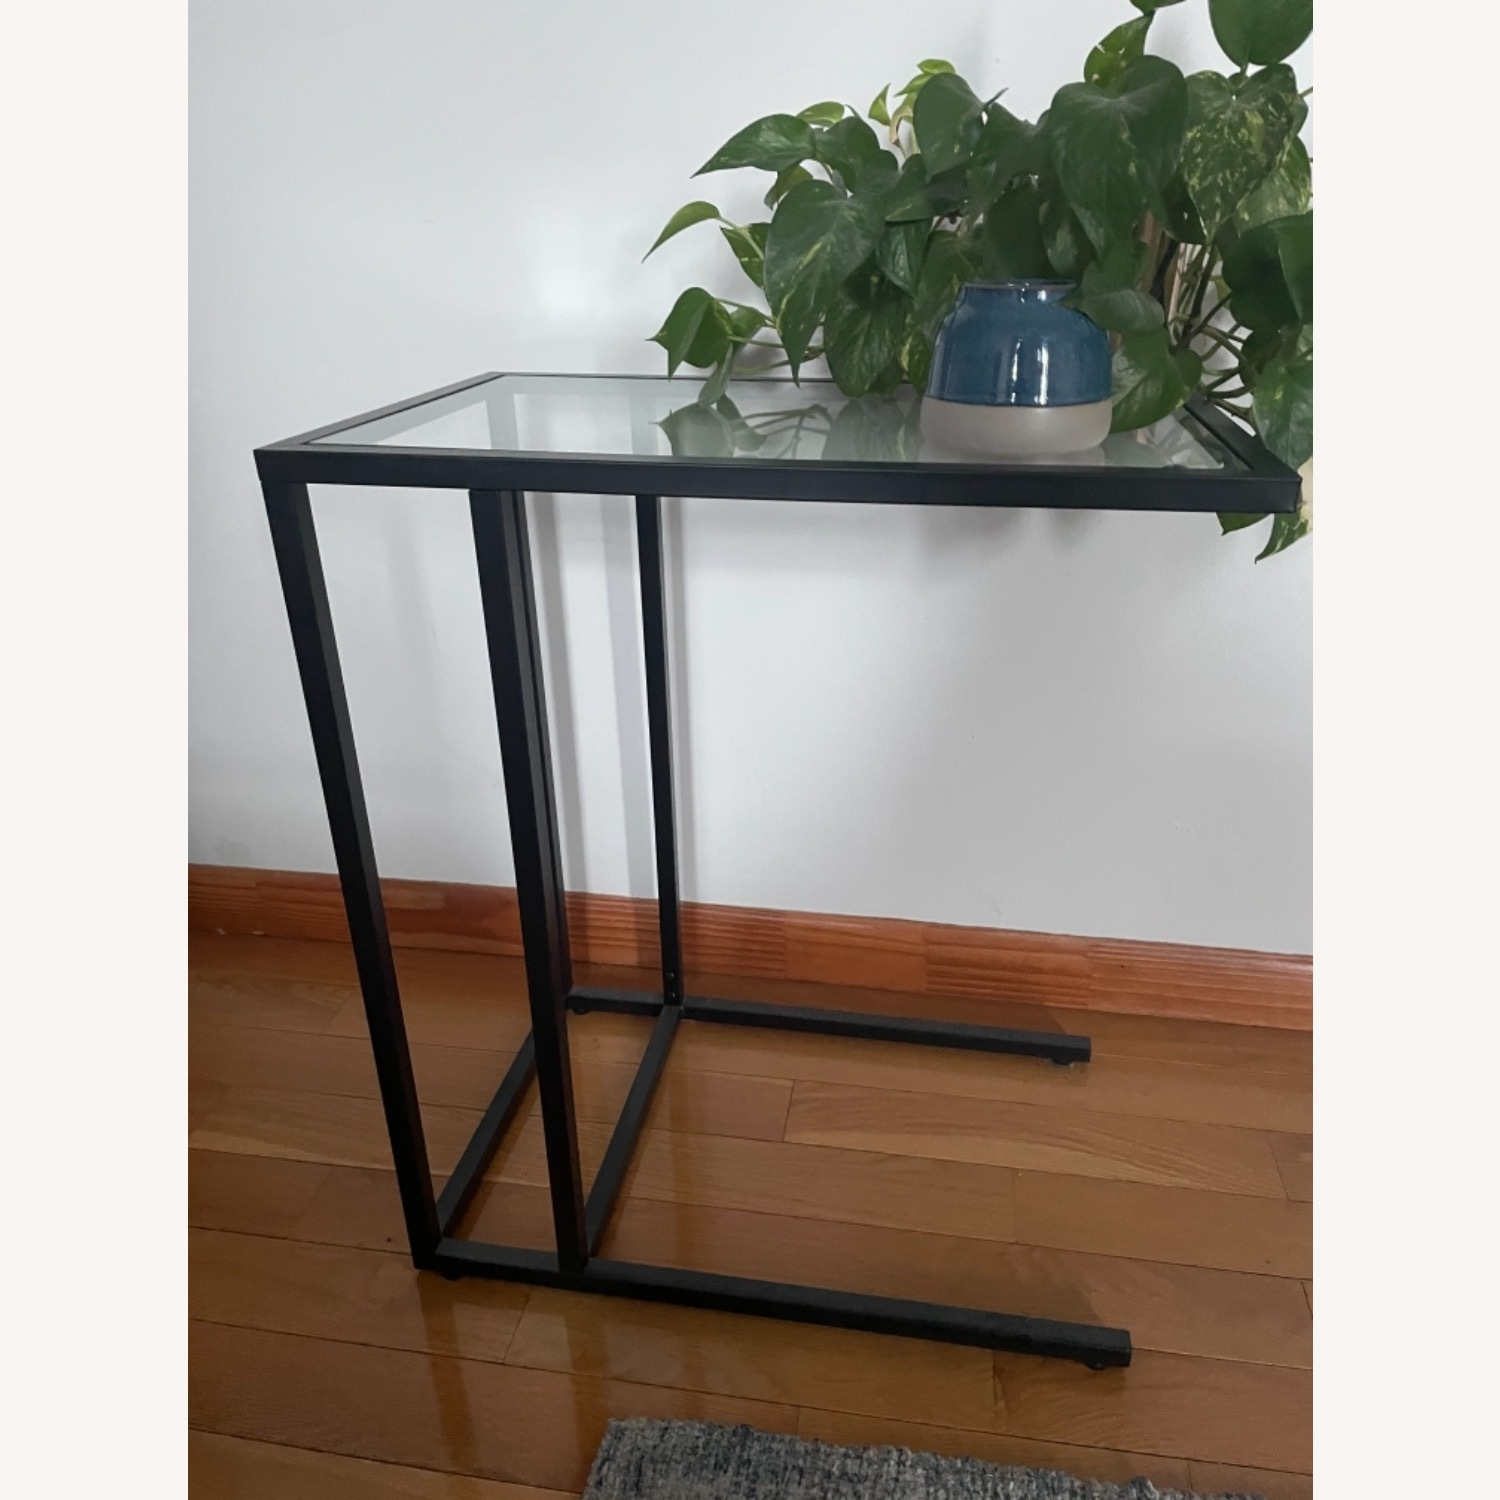 2 x Black Frame and Glass Side Tables - image-6